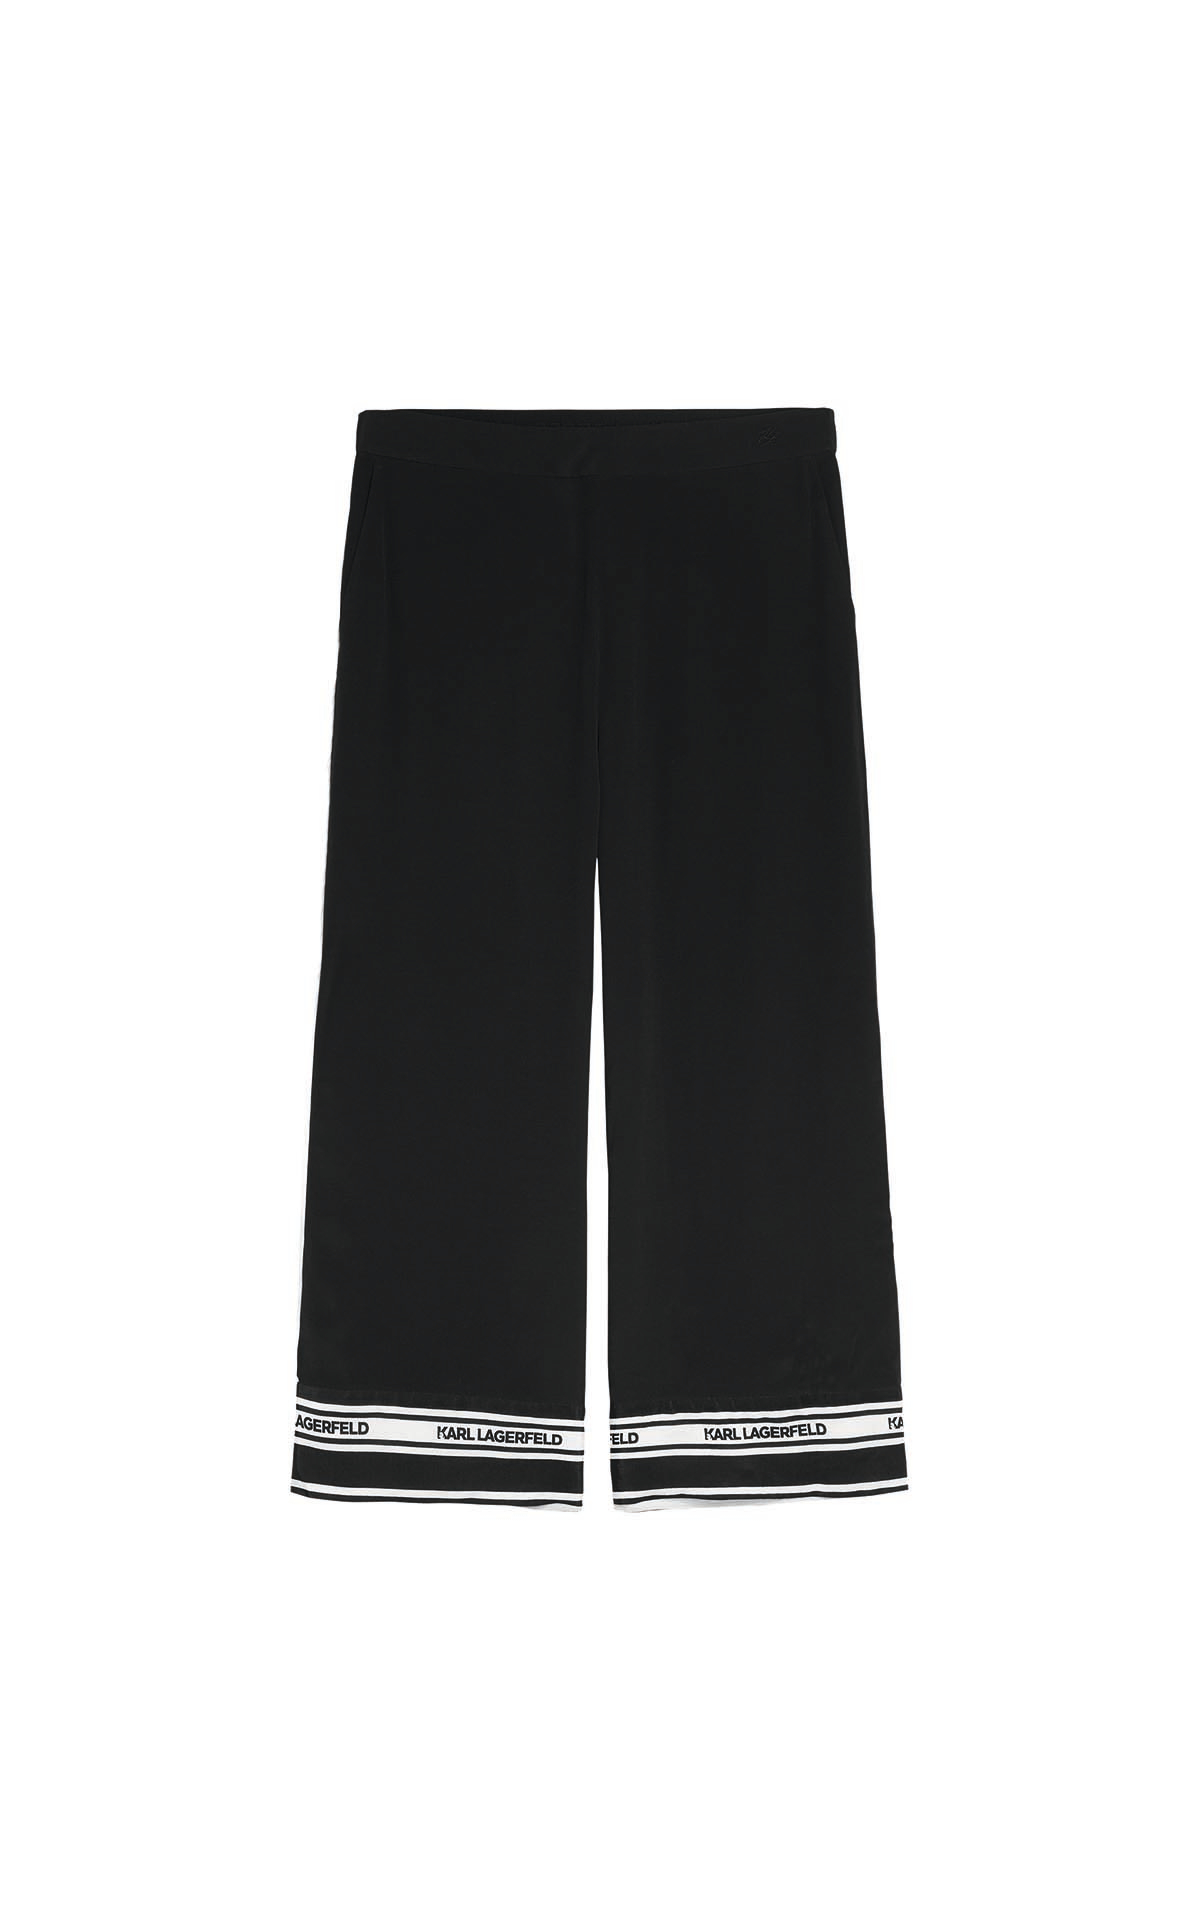 KARL LAGERFELD karlifornia logo culottes at The Bicester Village Shopping Collection